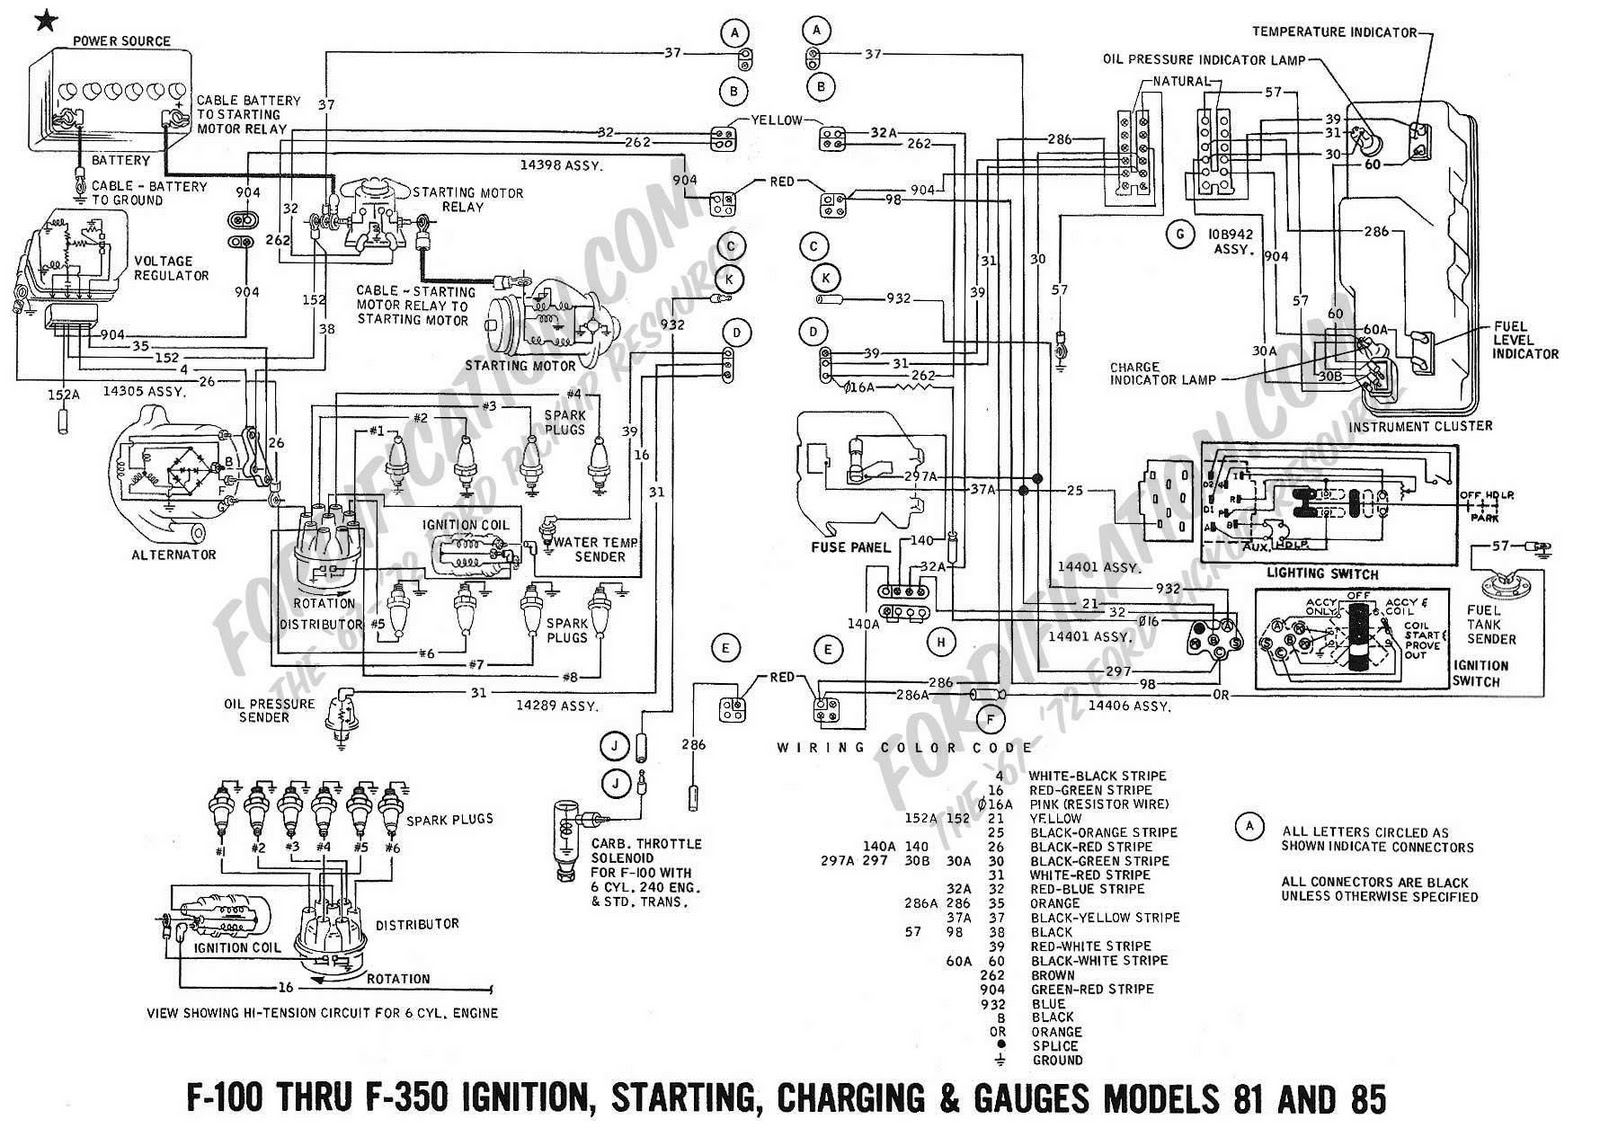 1970 ford f100 truck wiring diagram for headlight wiring library rh 17 aver tpk diningroom de